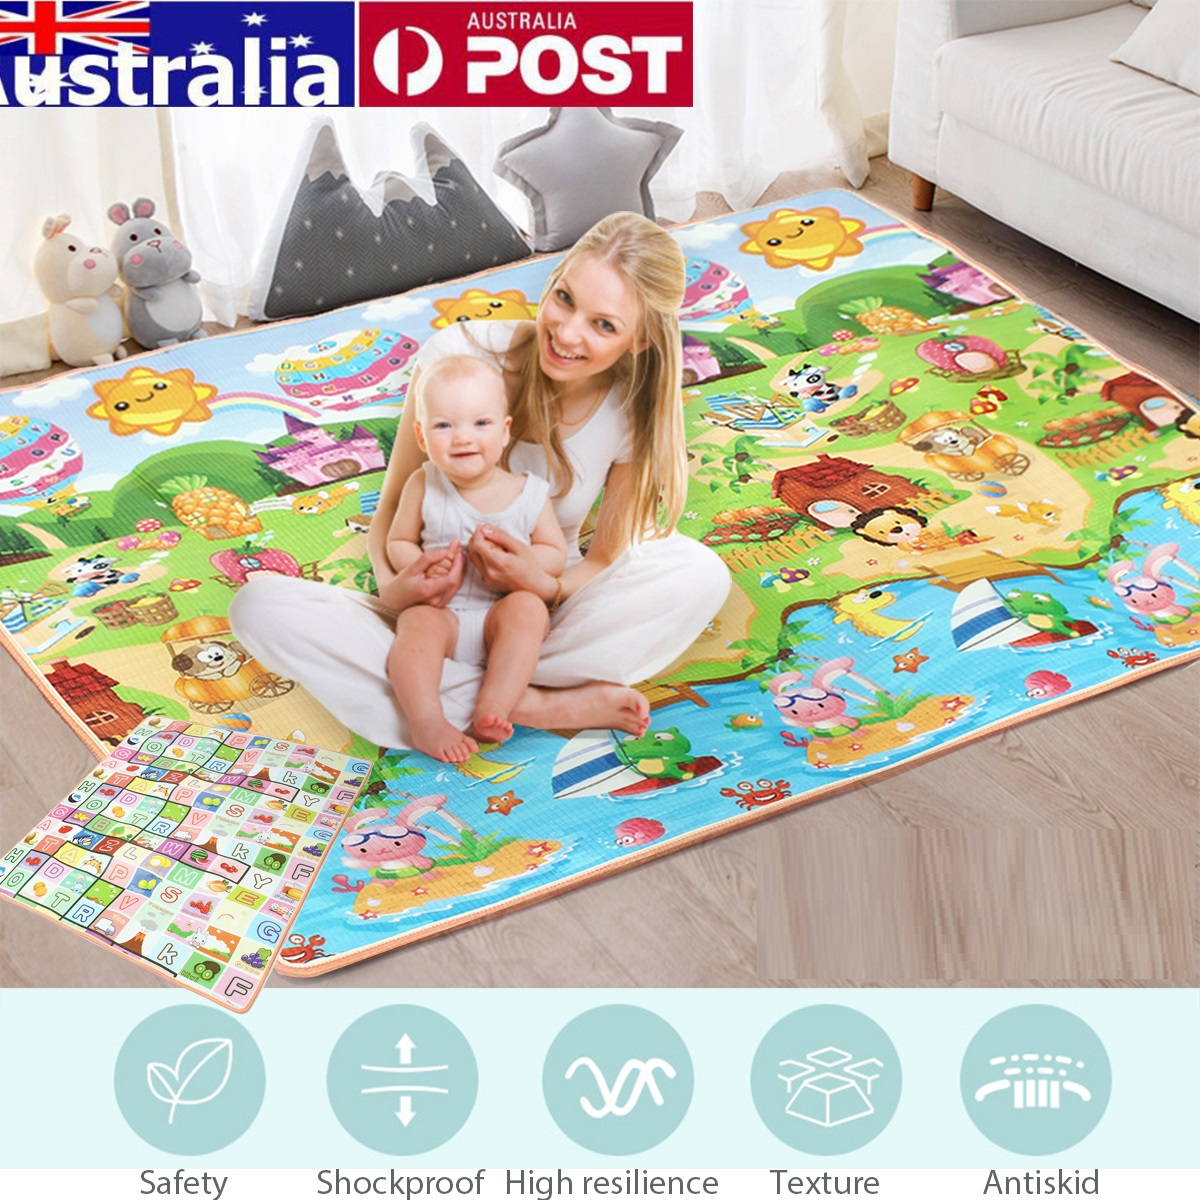 2021 New Arrival - Export quality Double Sided Baby Play & Crawling Mat, Picnic Mat, Kids Play Mat. Children's Rug Crawling Pad Kid Developing Play mat Infant Carpet Rattle Activity Educational Toys for Children